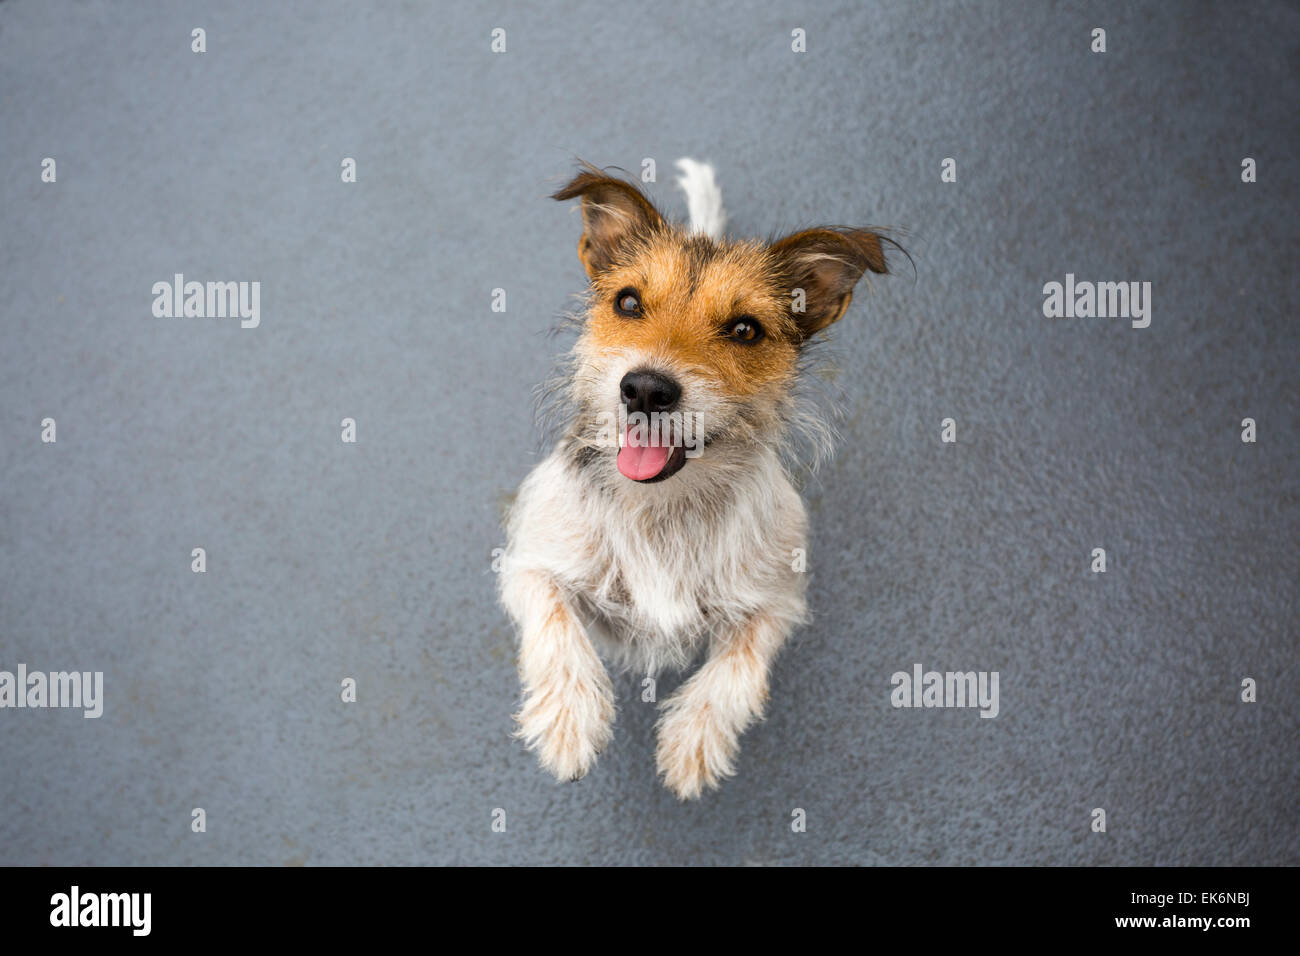 Jack Russell Terrier anticipating a treat - Stock Image